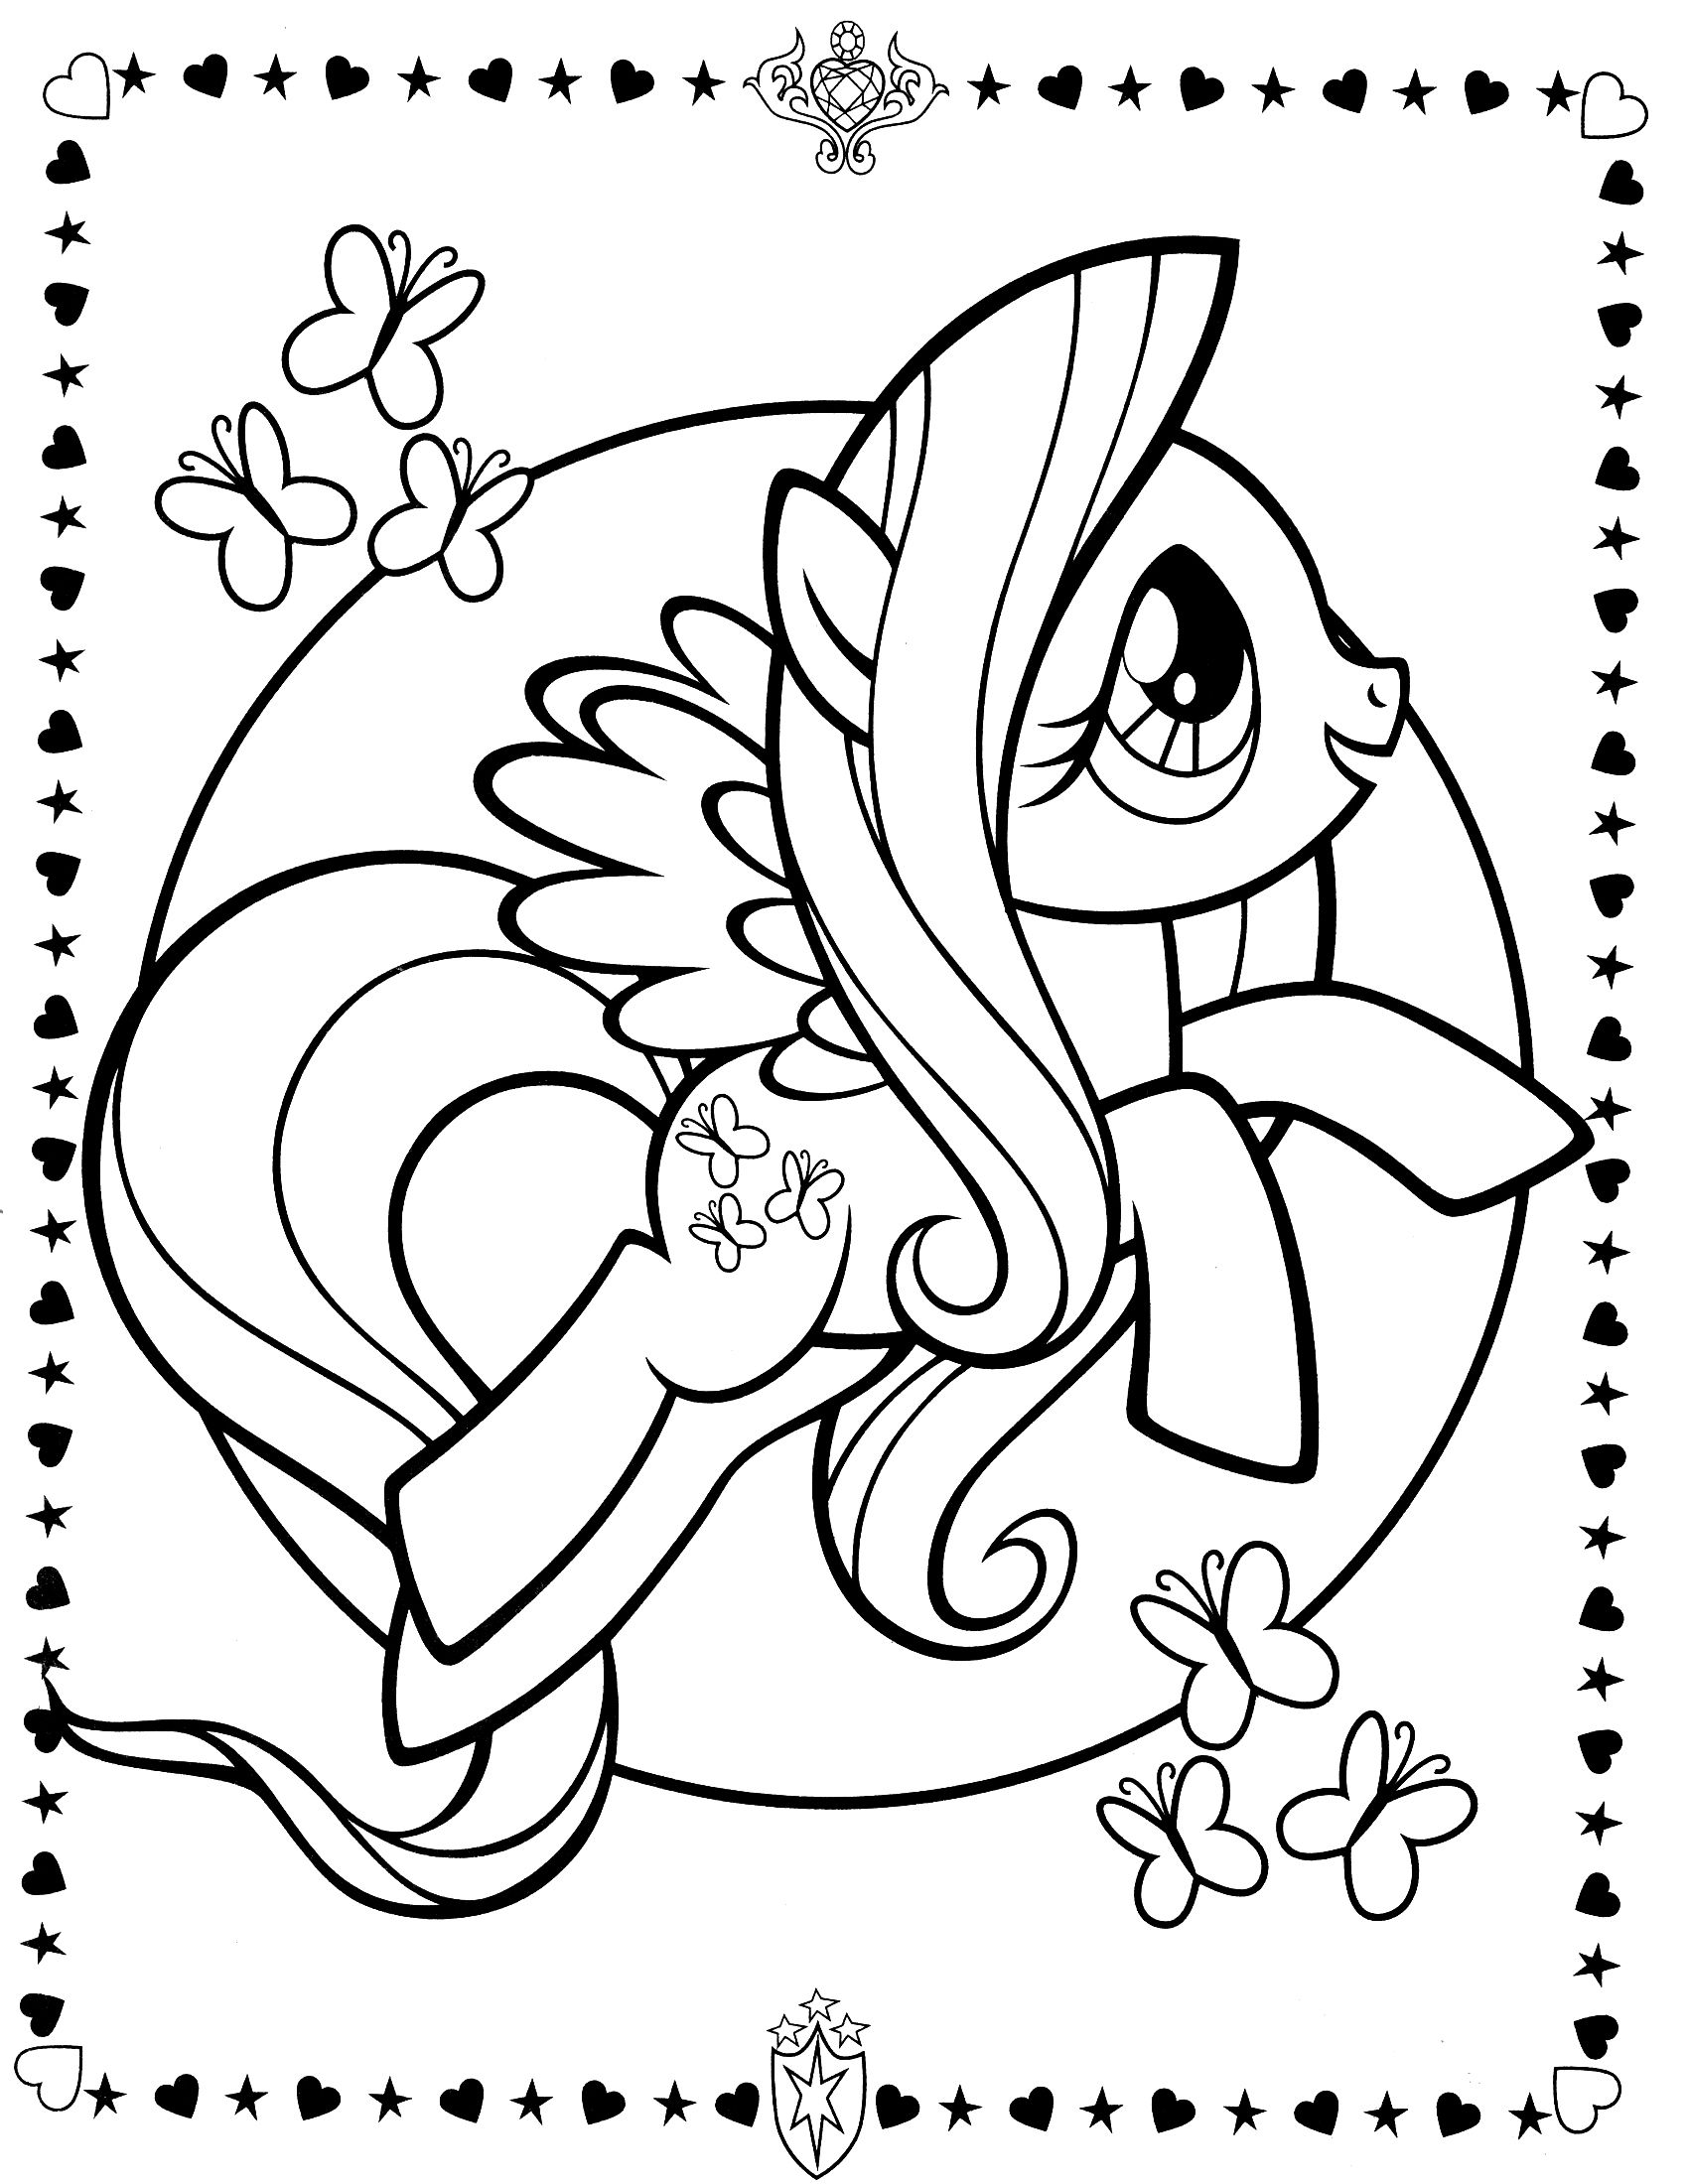 My Little Pony coloring page | Cricut | Pinterest | Decoraciones de ...